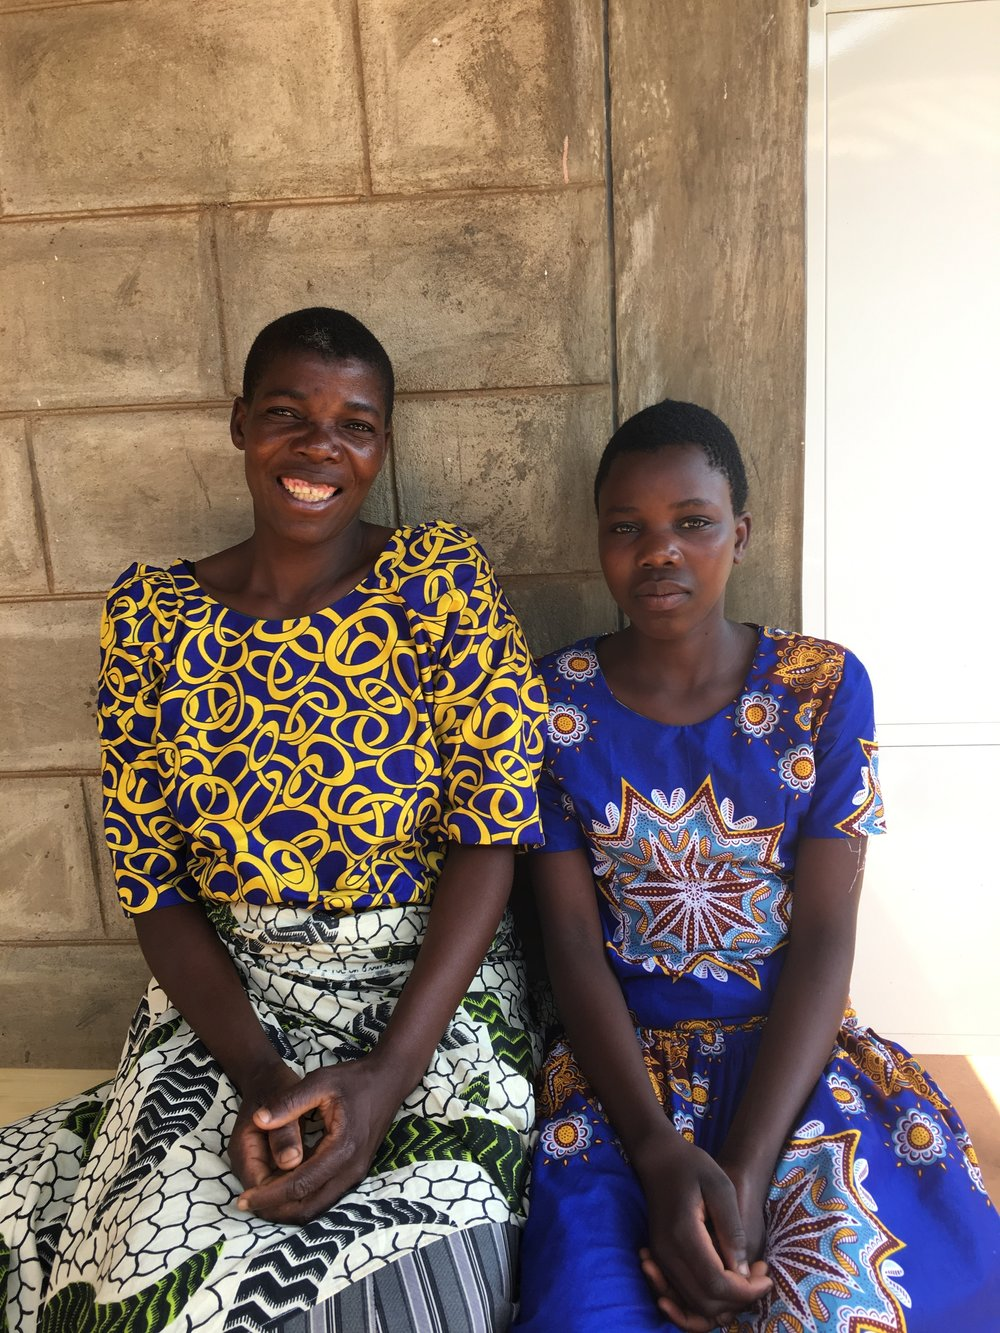 Coletta (right) our patient, and her mother (left).